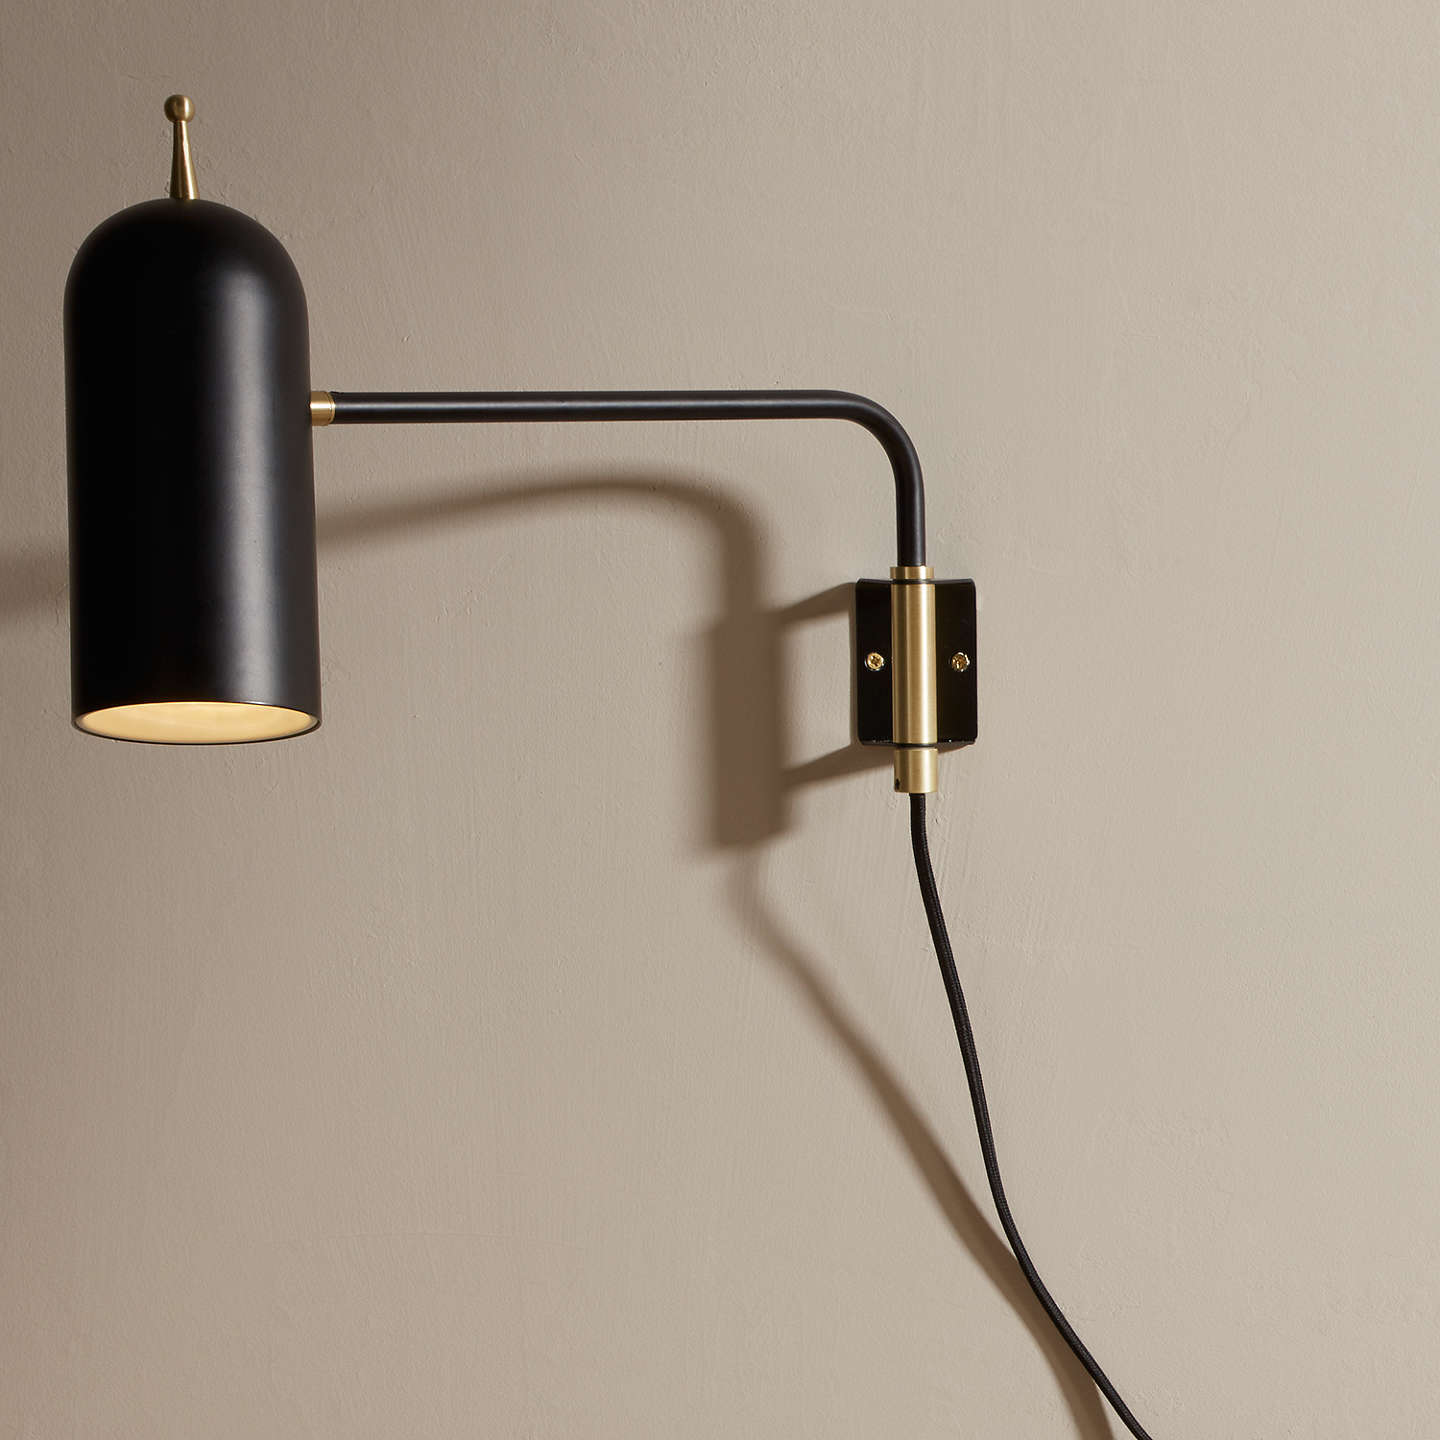 Design project by john lewis no045 led wall light black at john lewis buydesign project by john lewis no045 led wall light black online at johnlewis aloadofball Choice Image